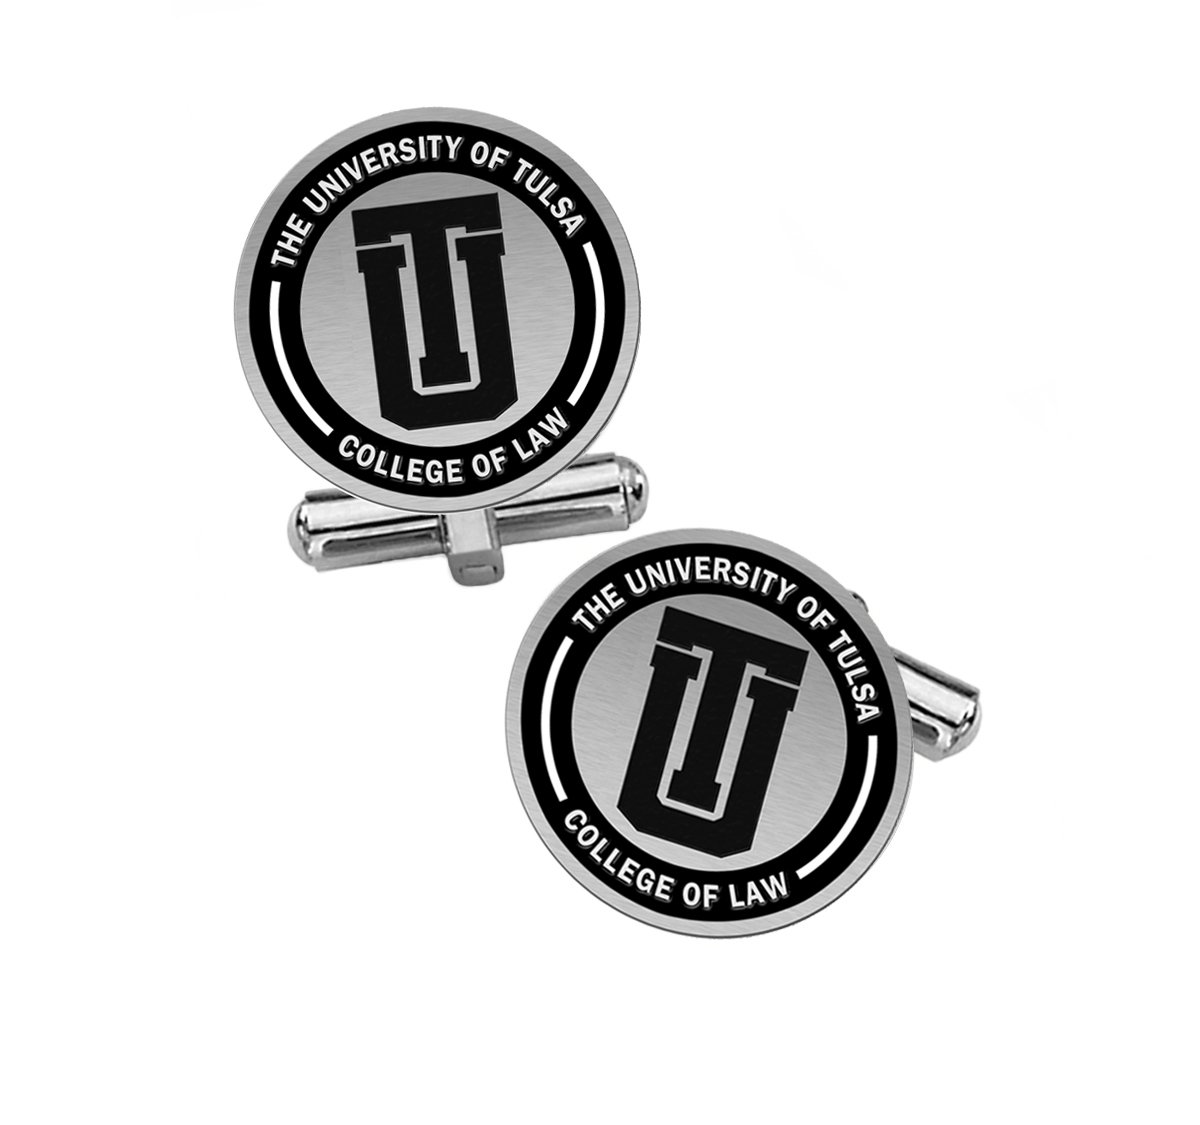 The University of Tulsa College of Law Cufflinks - Tulsa Golden Hurricanes Cufflinks by College Jewelry (Image #1)